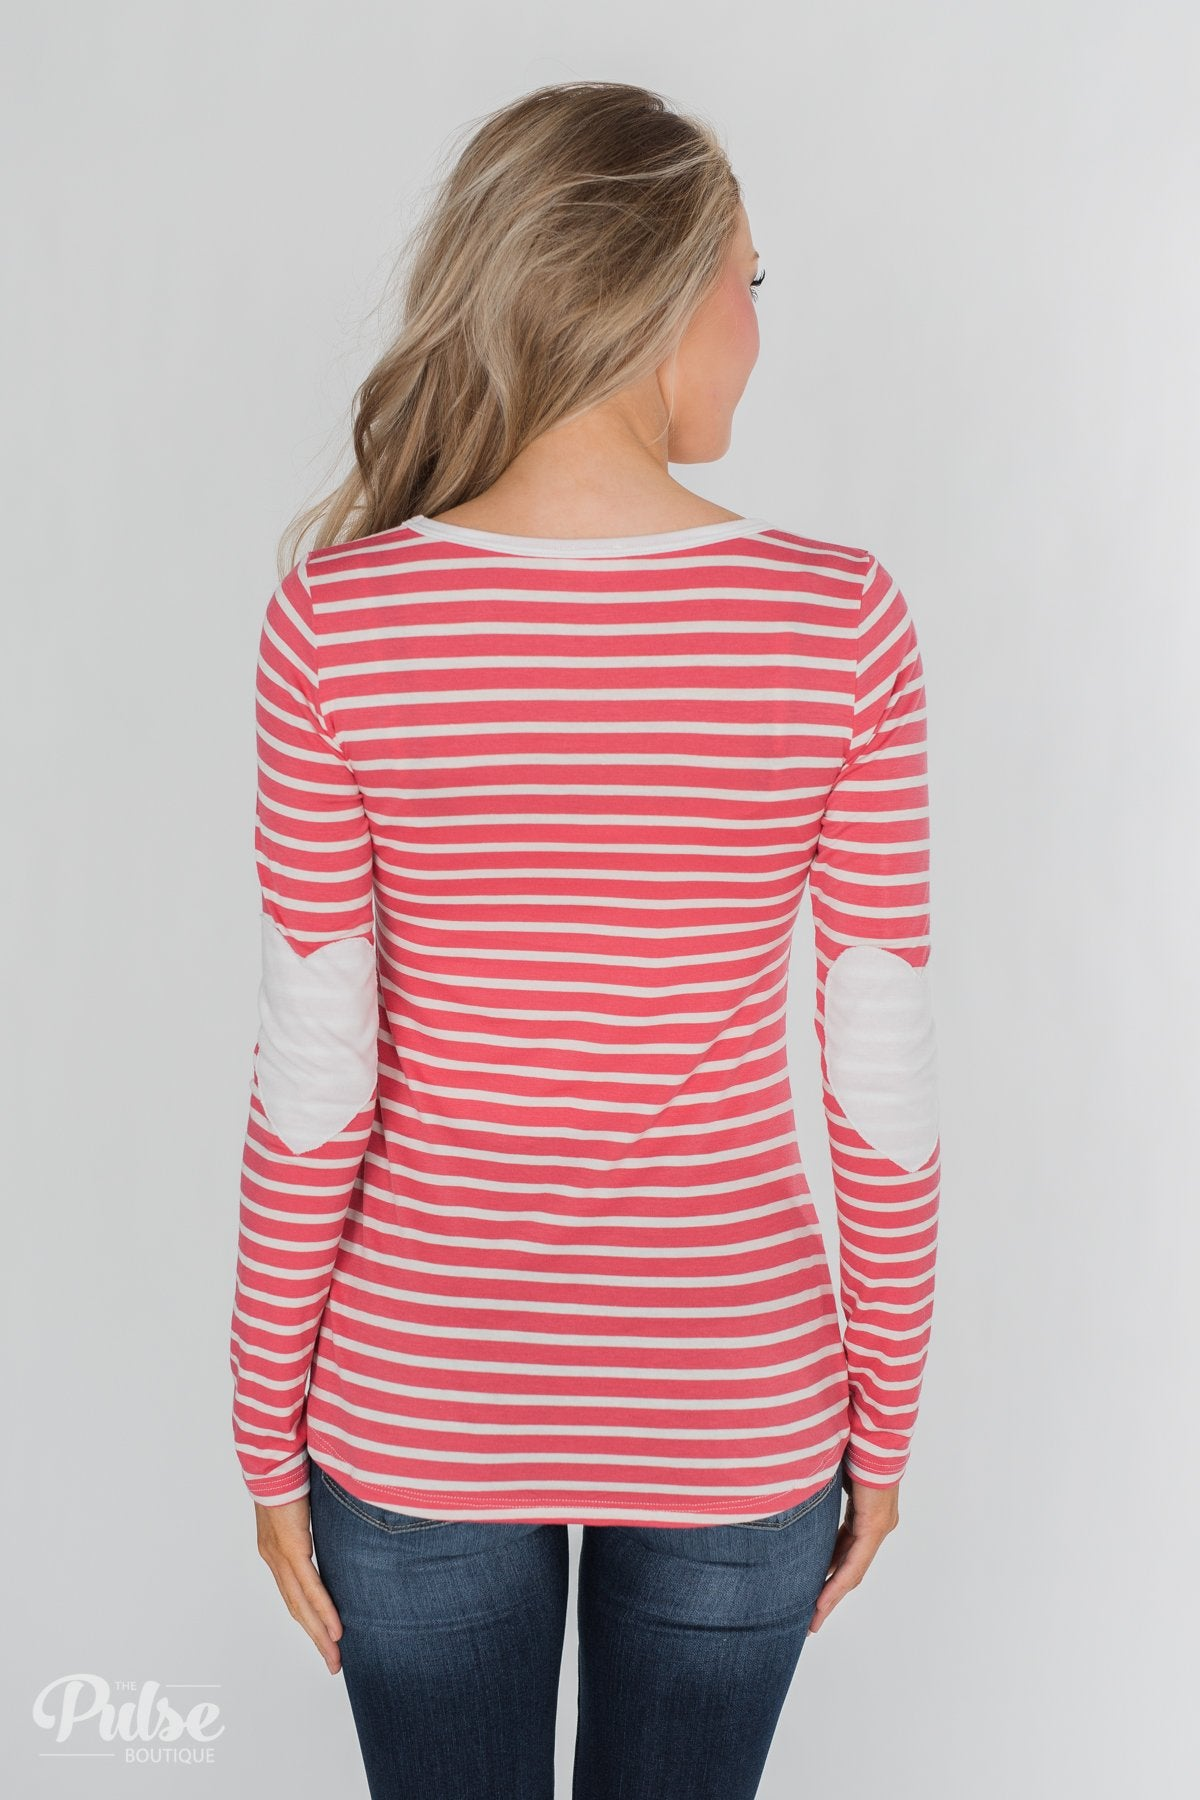 Forever Mine Heart Elbow Patch Top - Raspberry Pink